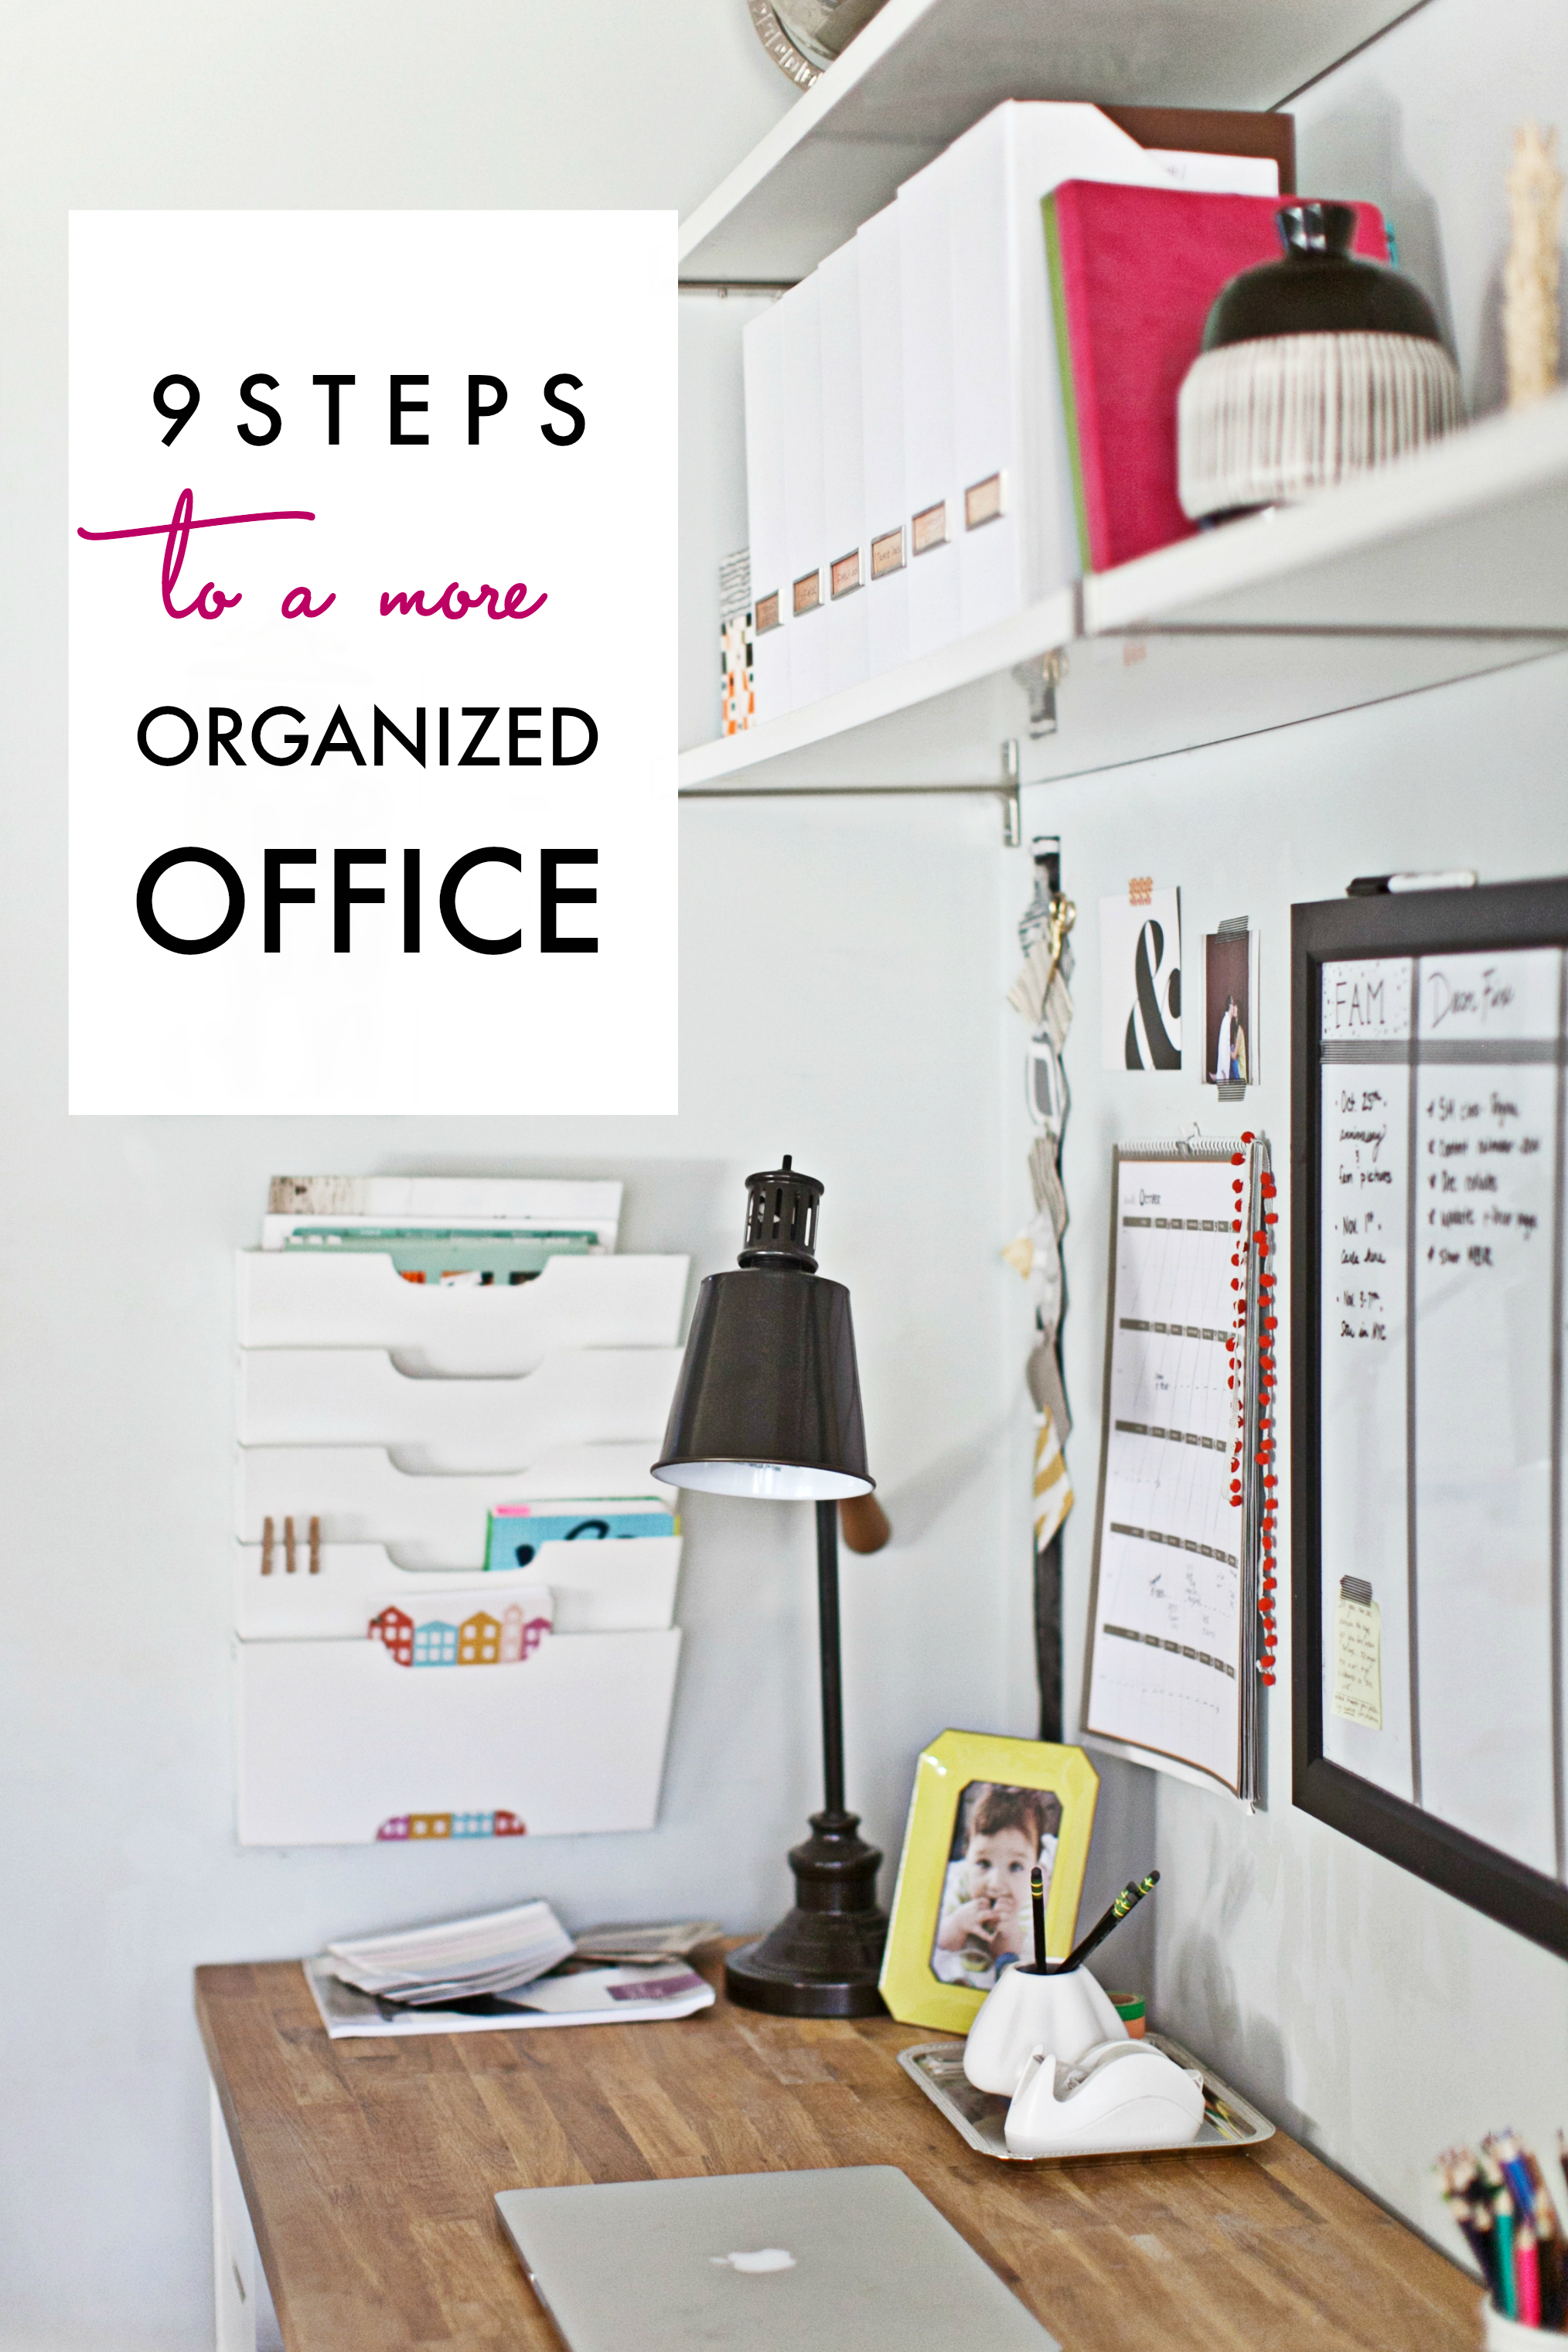 9 Steps to a More Organized Office | Home Organization Tips + Ideas ...